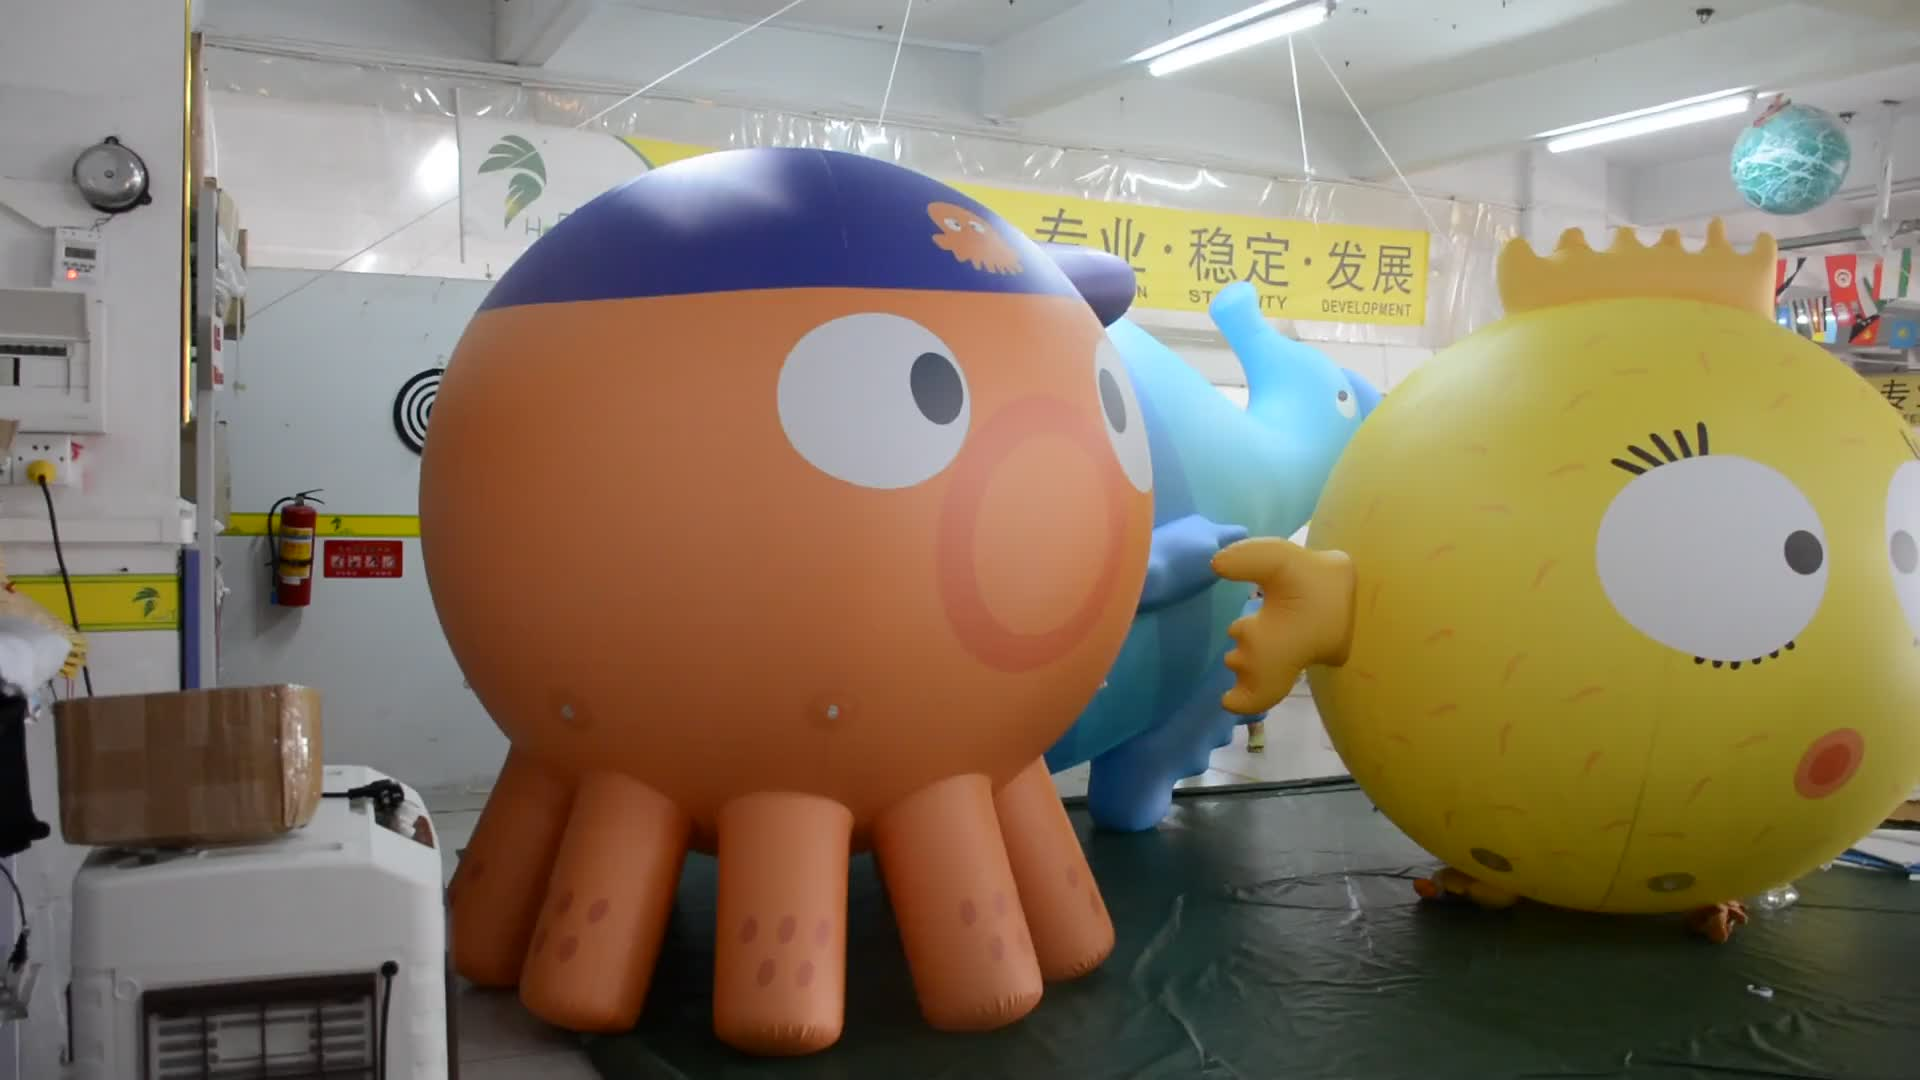 Inflatable Cow Balloon Giant Inflatable Milk Cow Animal Toy Custom Inflatable Air Figures